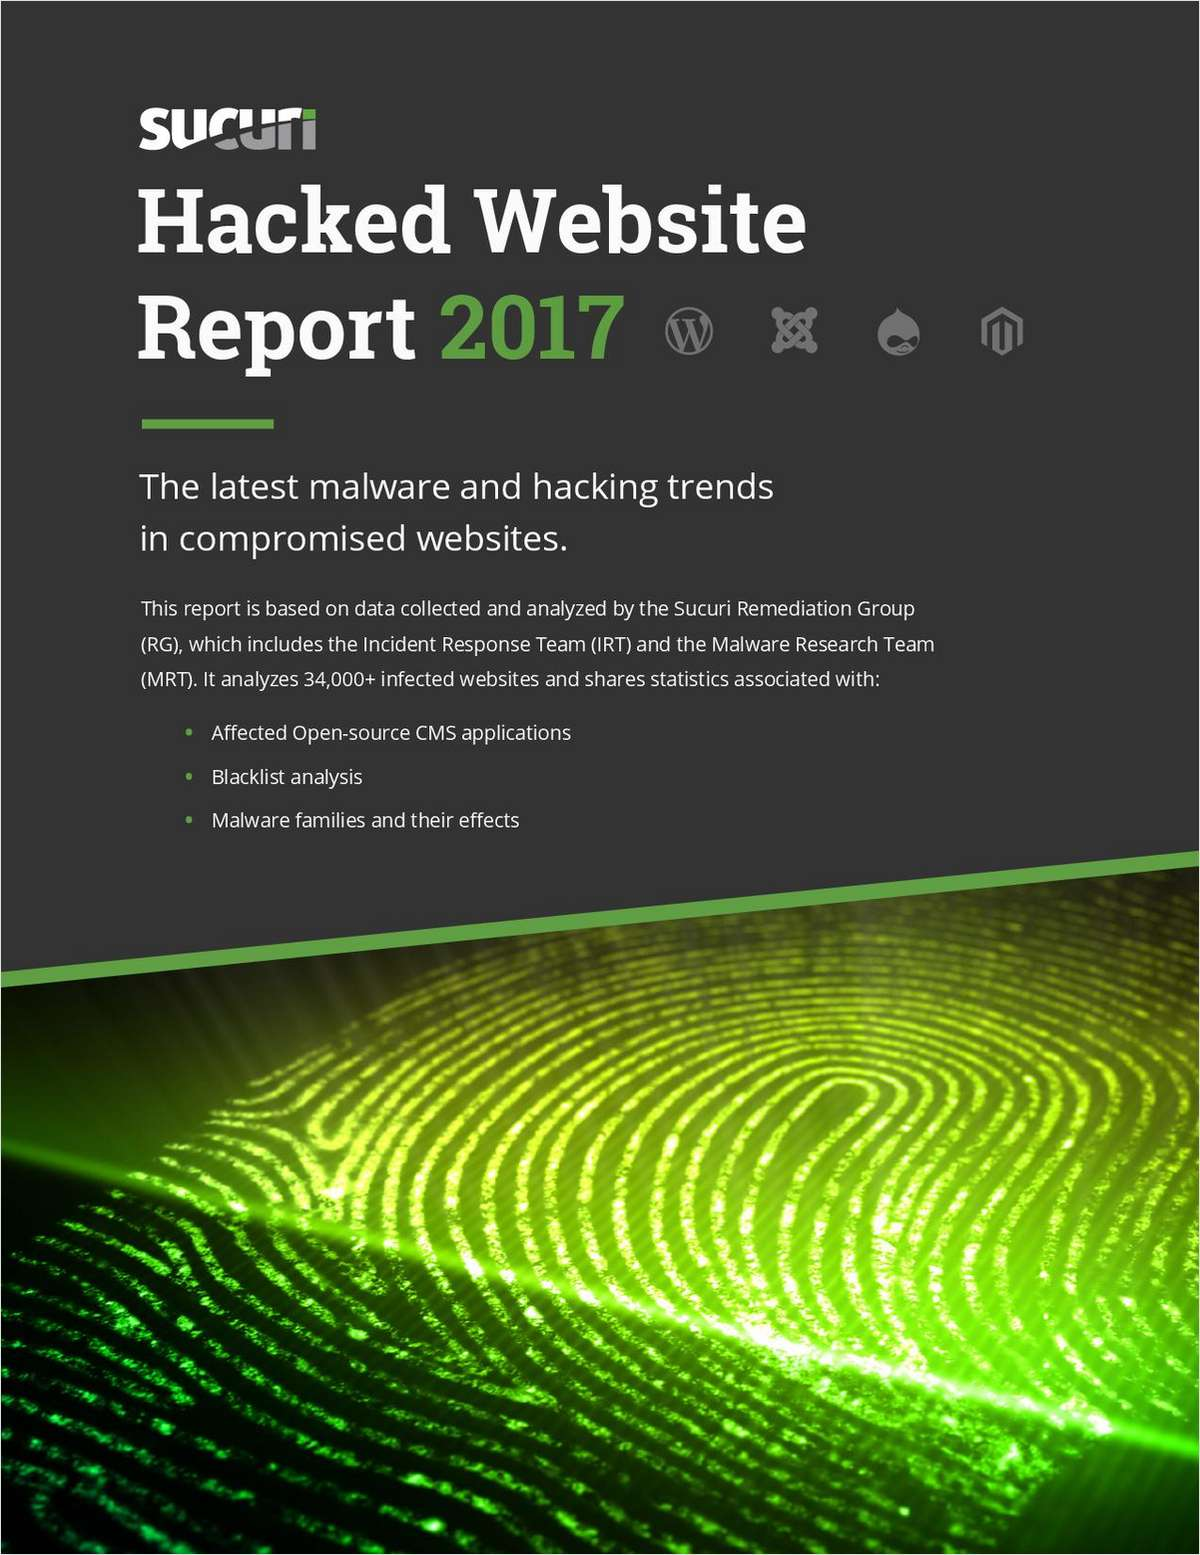 The Hacked Website Report